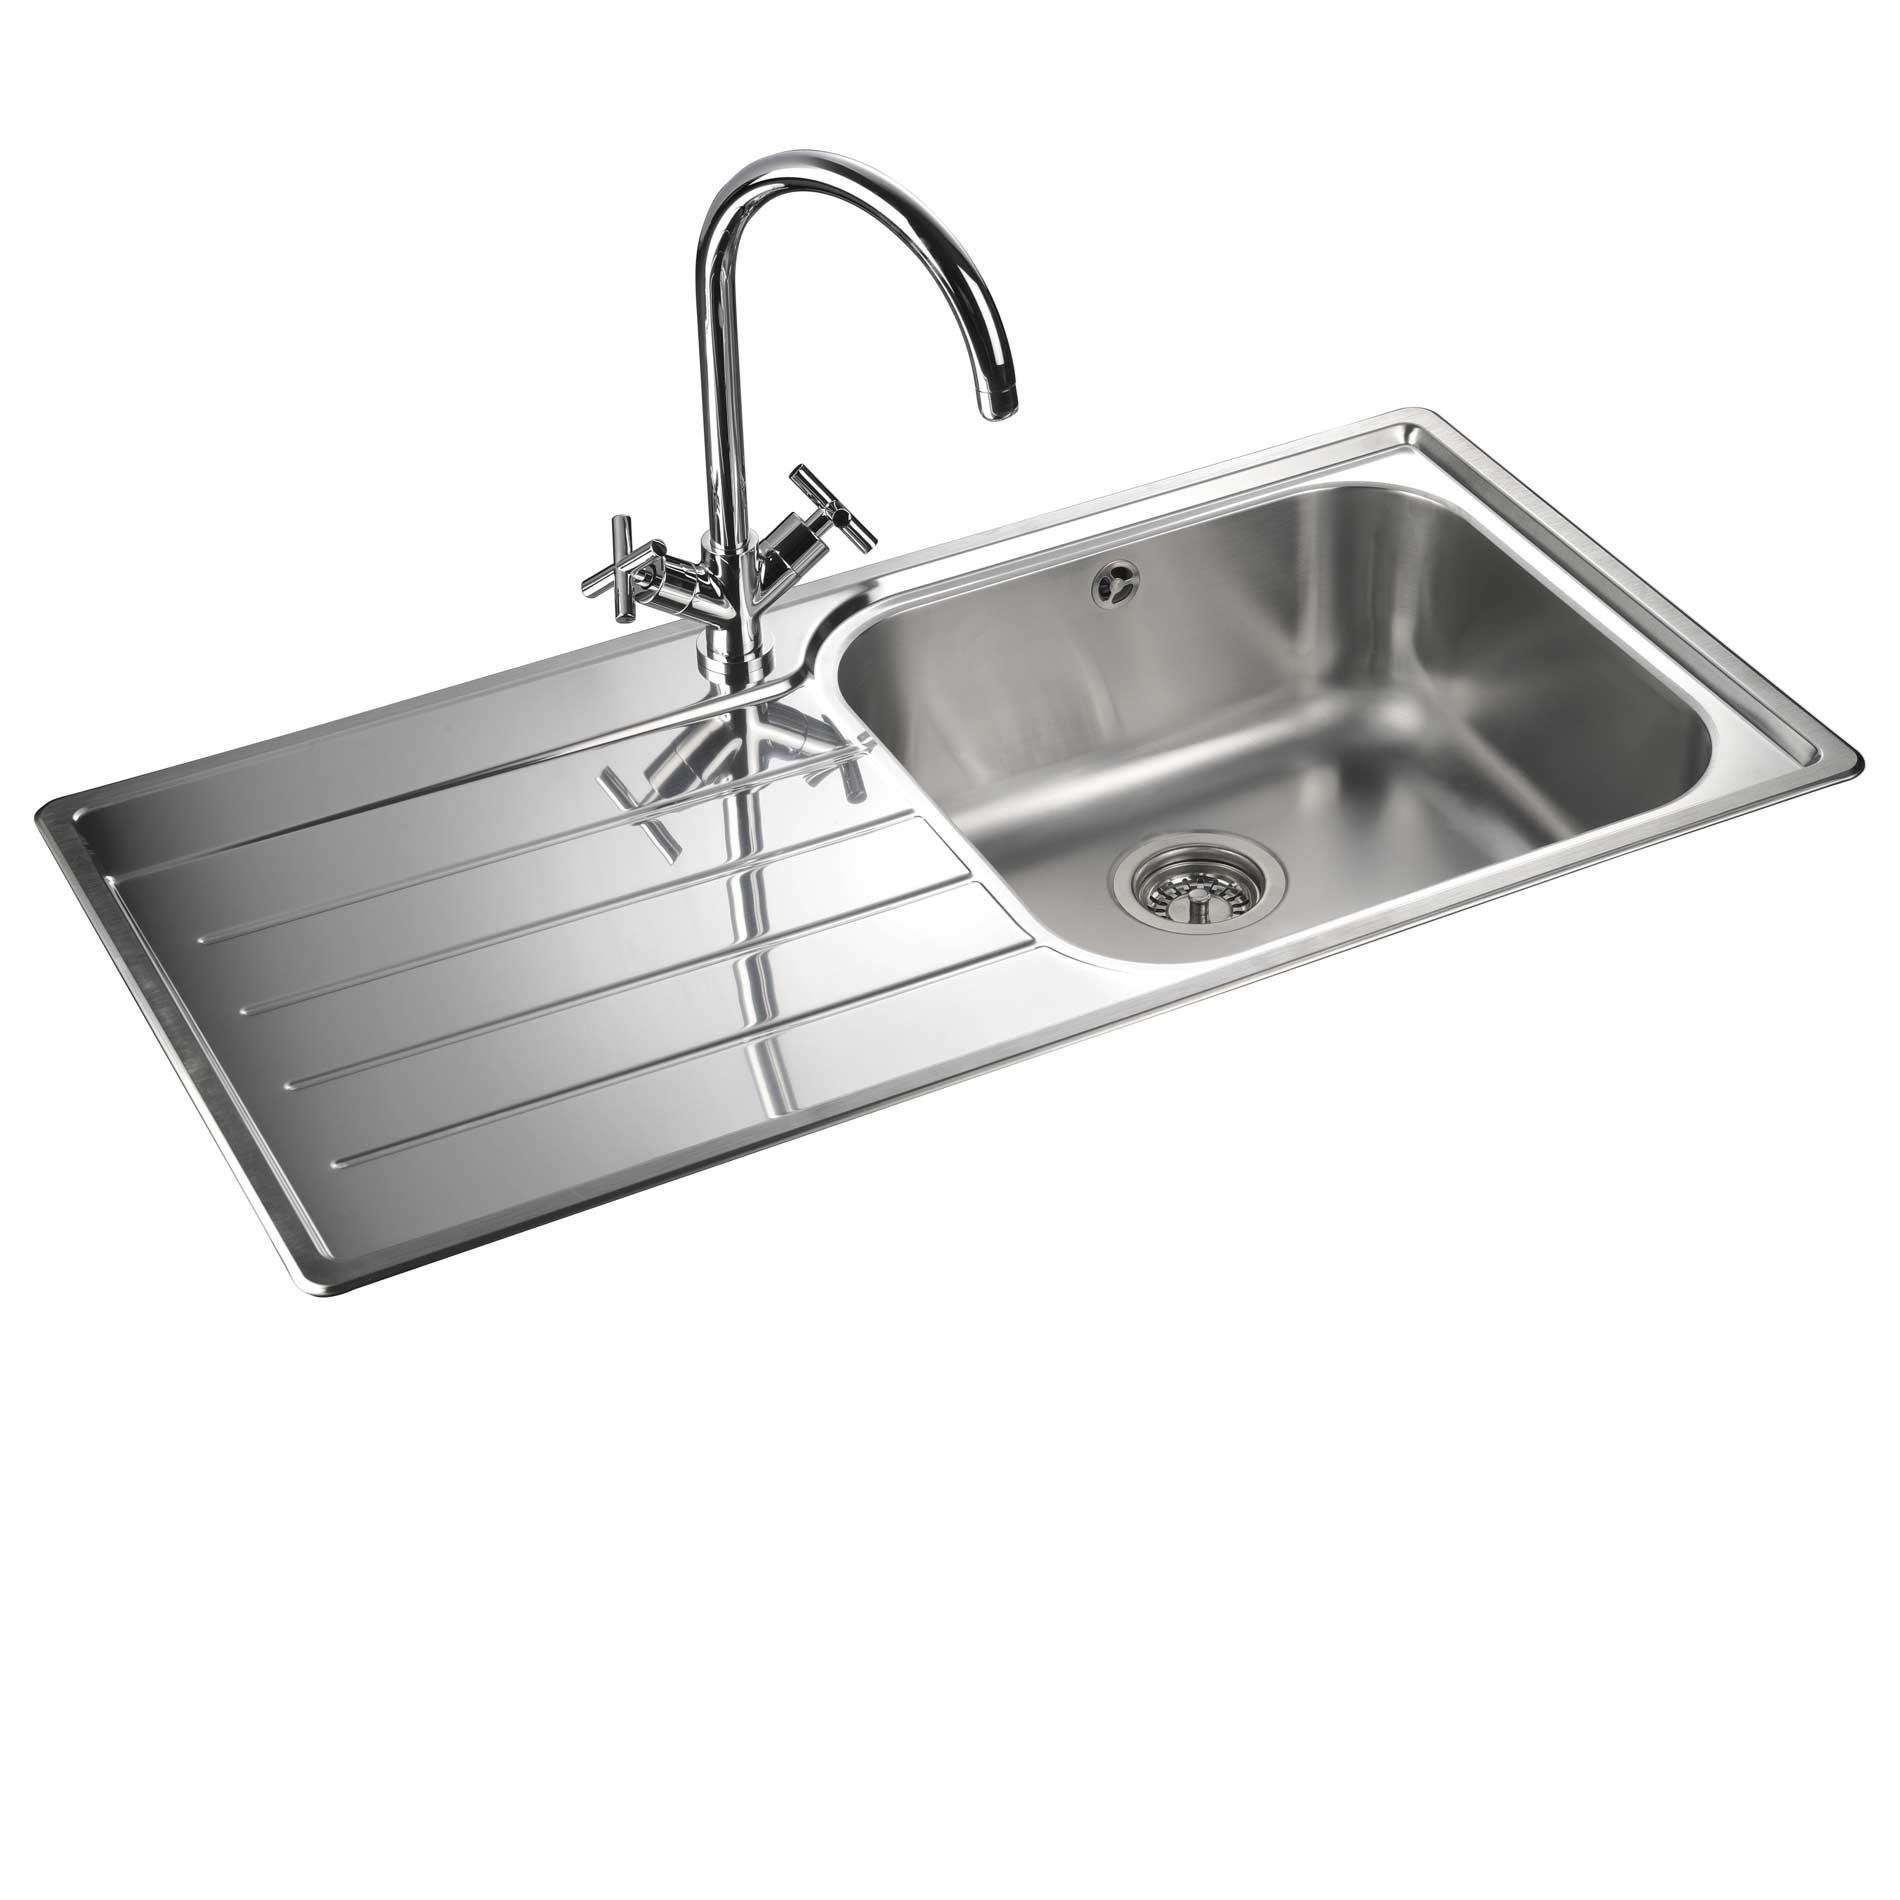 kpf lever stainless touch kraus single kitchen on faucets amazon canada sink faucet pull out steel dul dp sinks